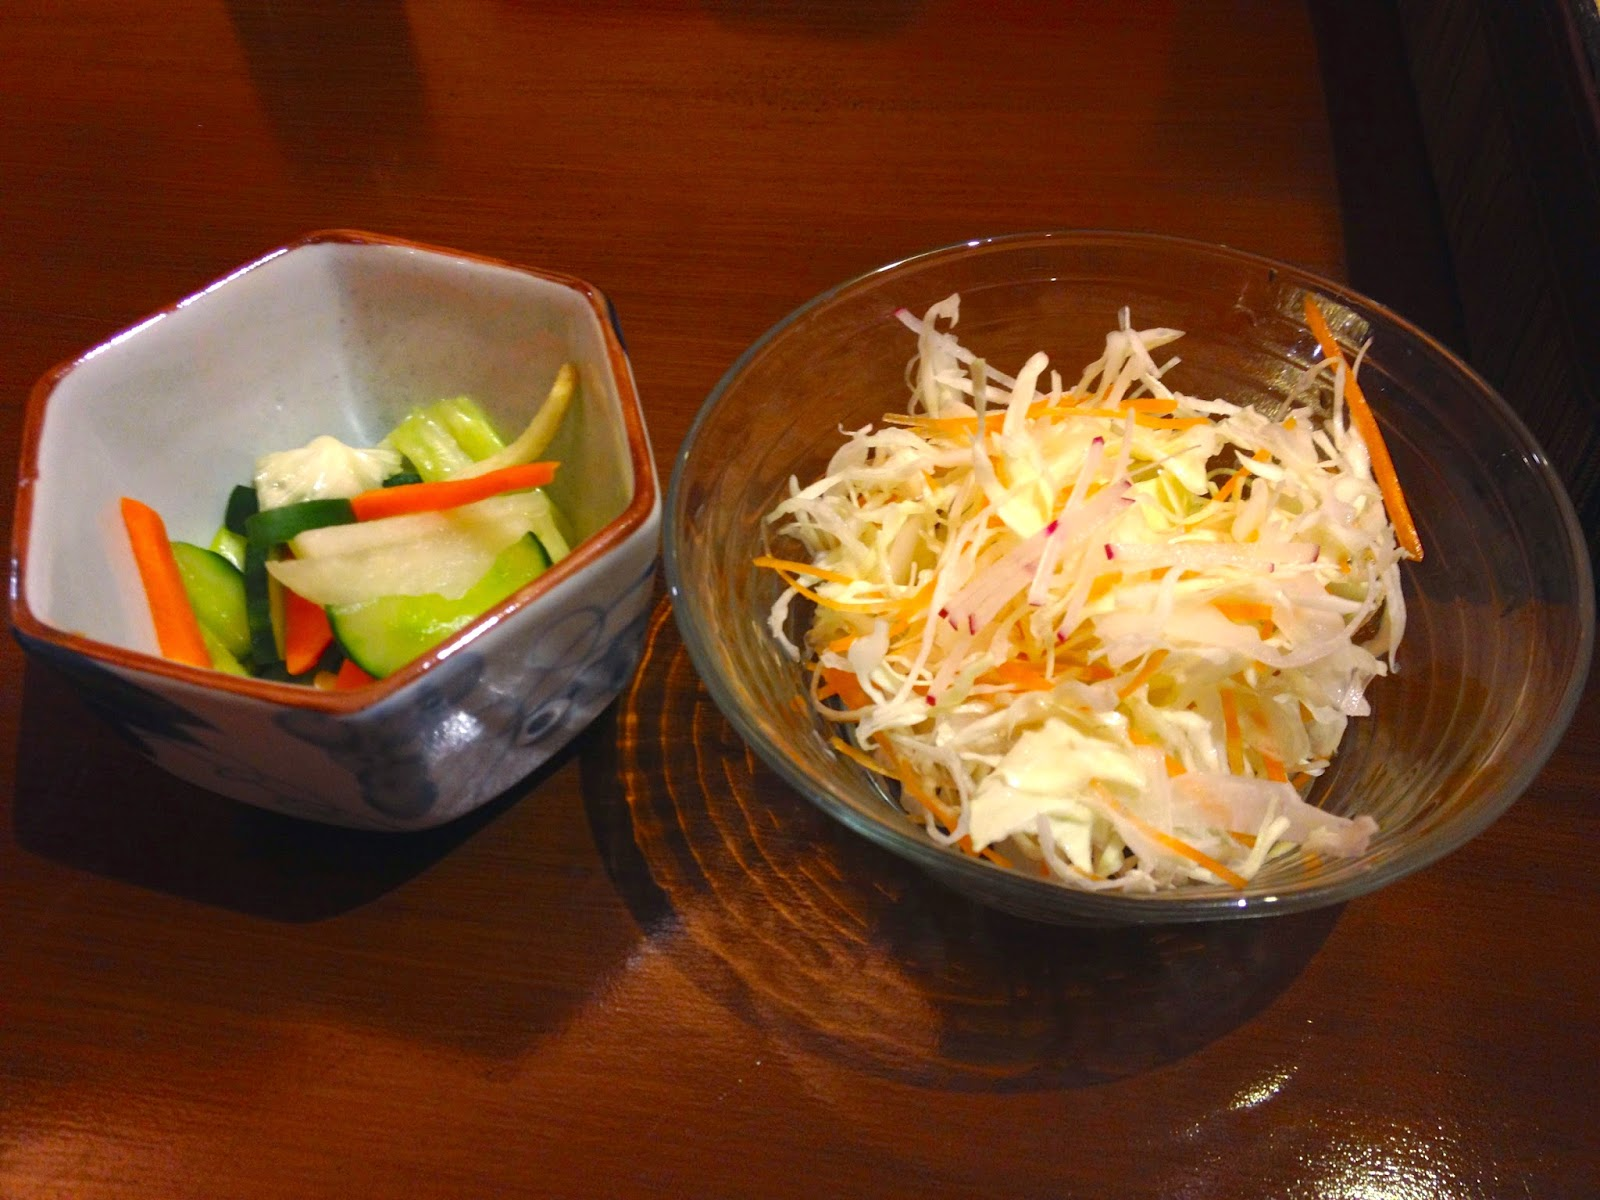 cabbage and pickled vegetables for Butadon set